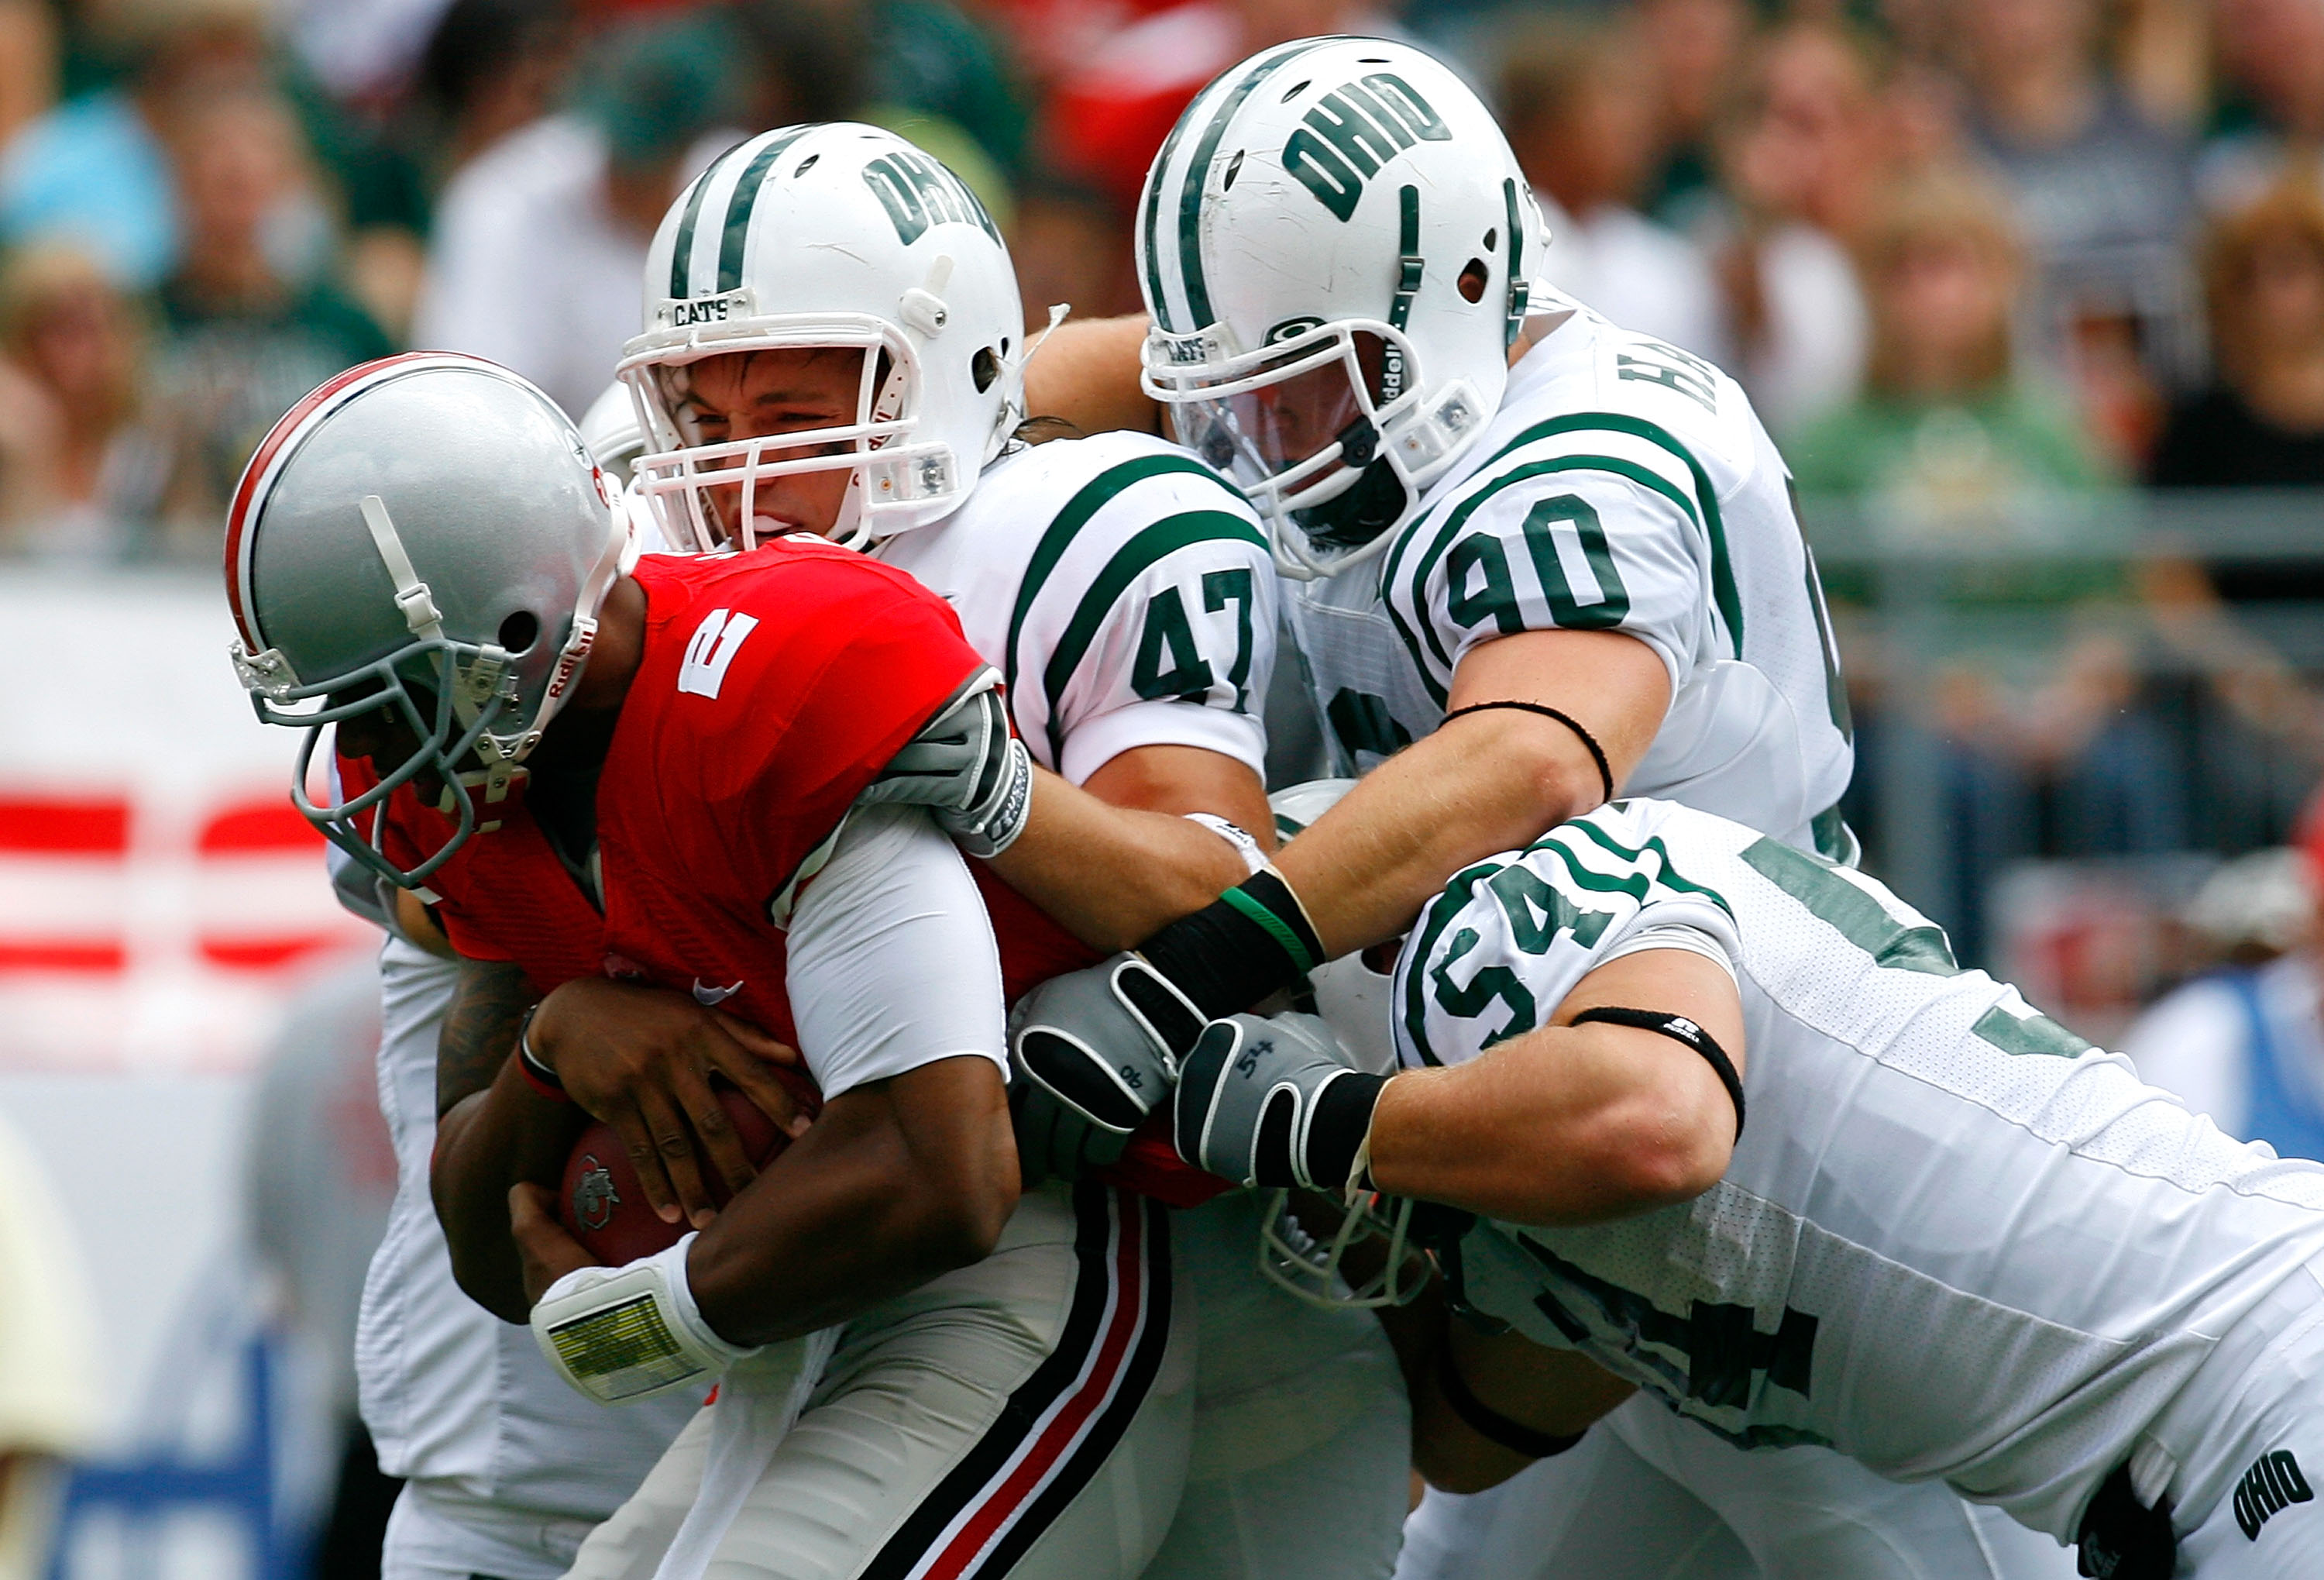 COLUMBUS, OH - SEPTEMBER 06:  Backup quarterback Terrelle Pryor #2 of the Ohio State Buckeyes is tackled by defenders Noah Keller #47, Kris Luchsinger #54 and Jameson Hartke #90 of the Ohio Bobcats during the game at Ohio Stadium on September 6, 2008 in C